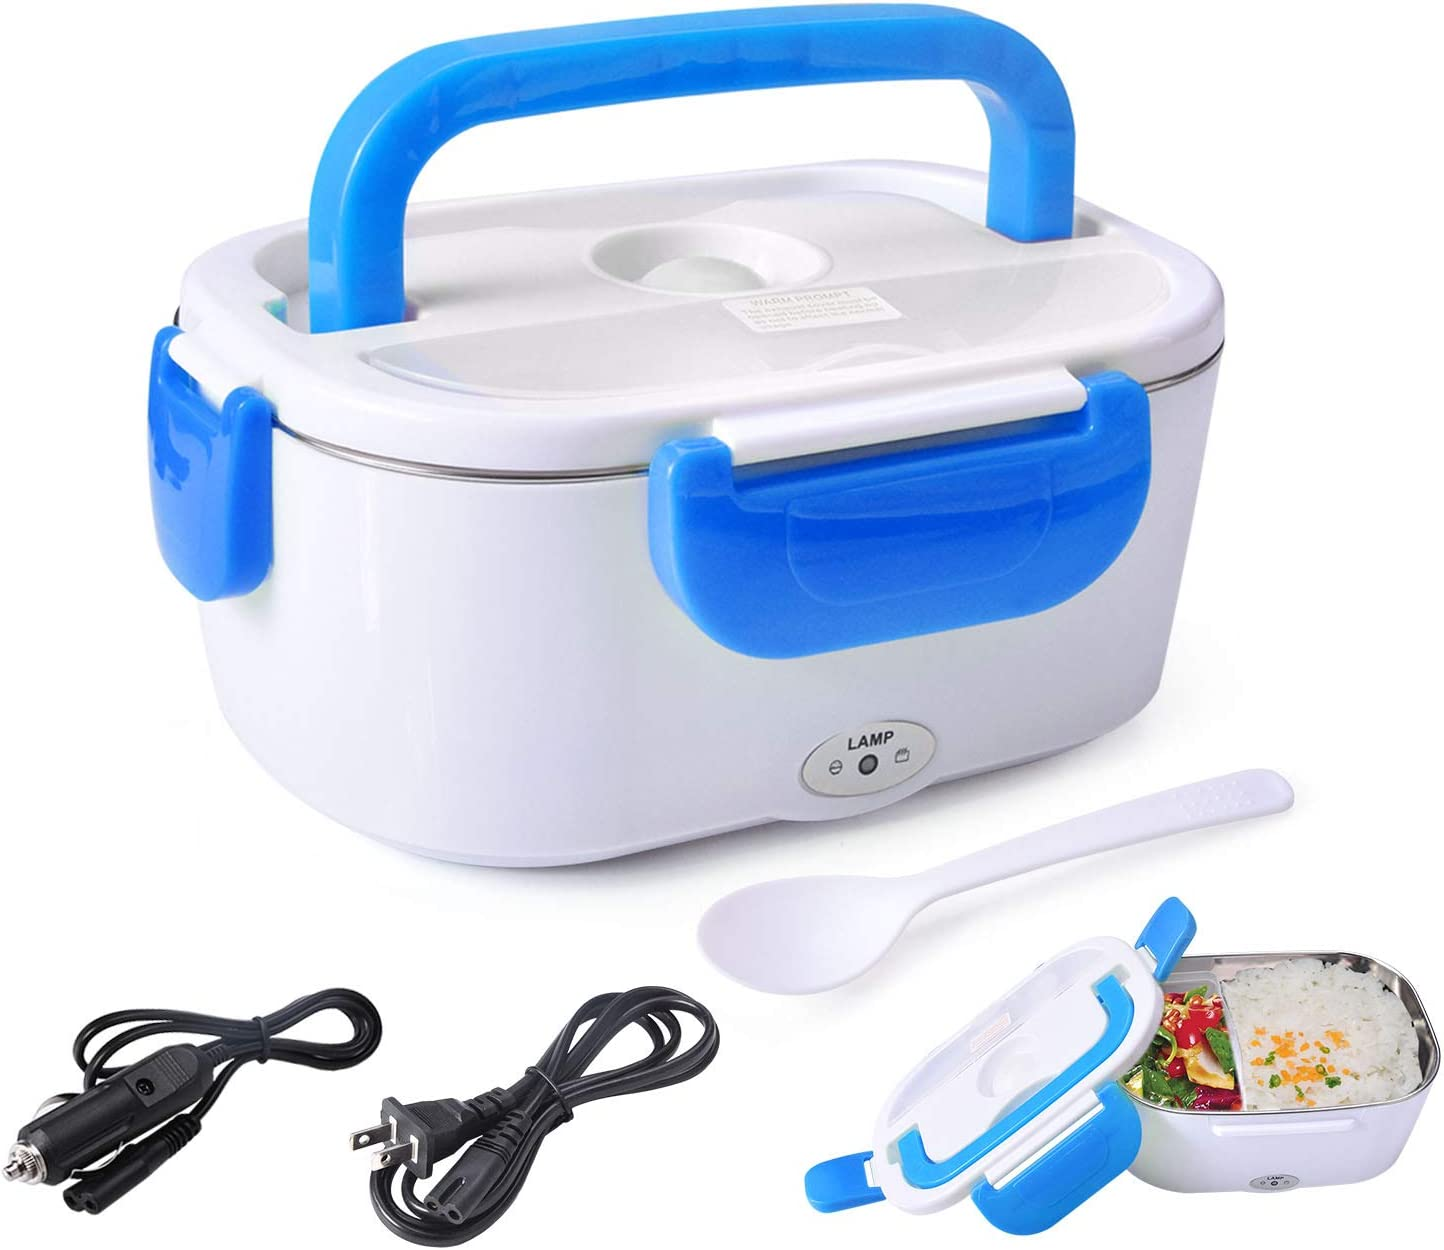 Electric Lunch Box Food Heater Warmer 2 in 1 for Home Office 110V and Car Truck 12V 40W Use Include 1.05L Removable Stainless Steel Container Spoon and 2 Compartments (Blue)